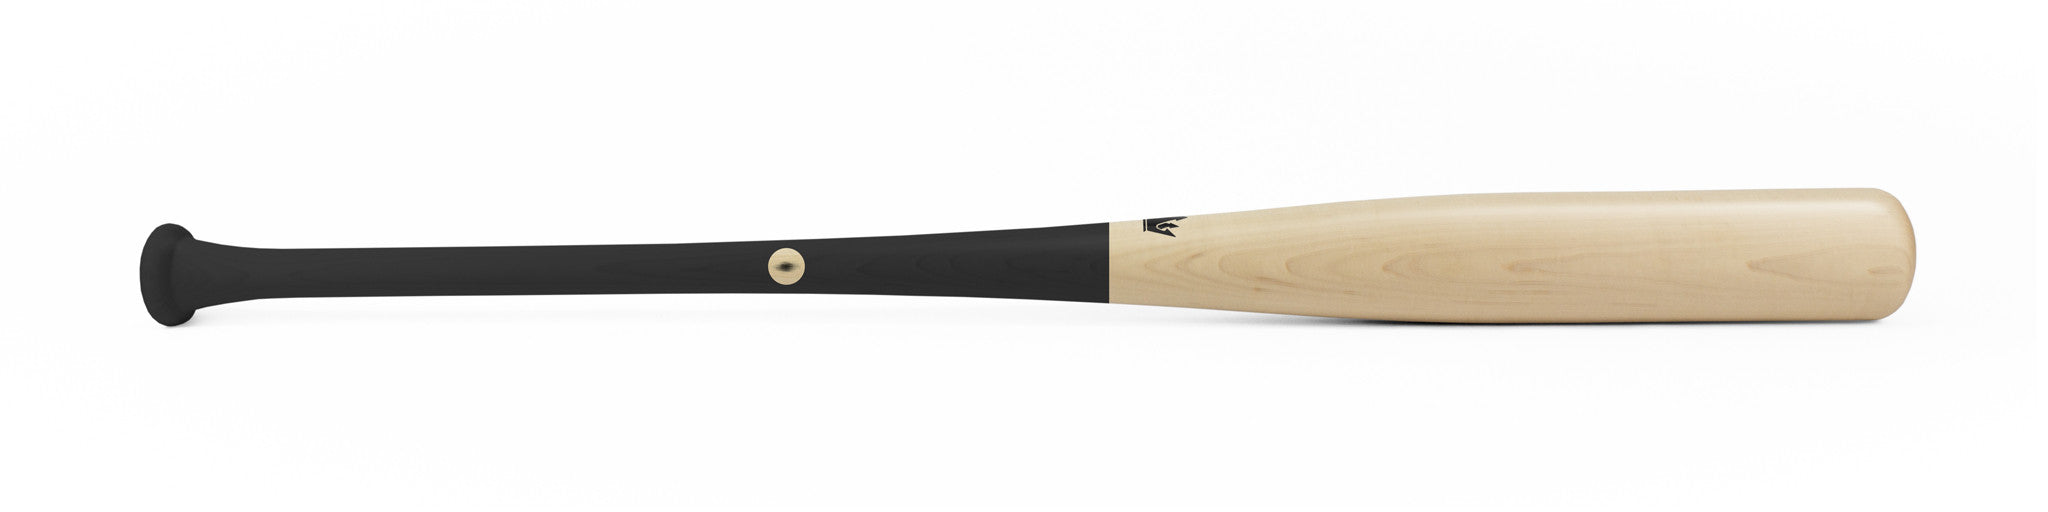 Wood bat - Maple model 243-P Black Dip - 6